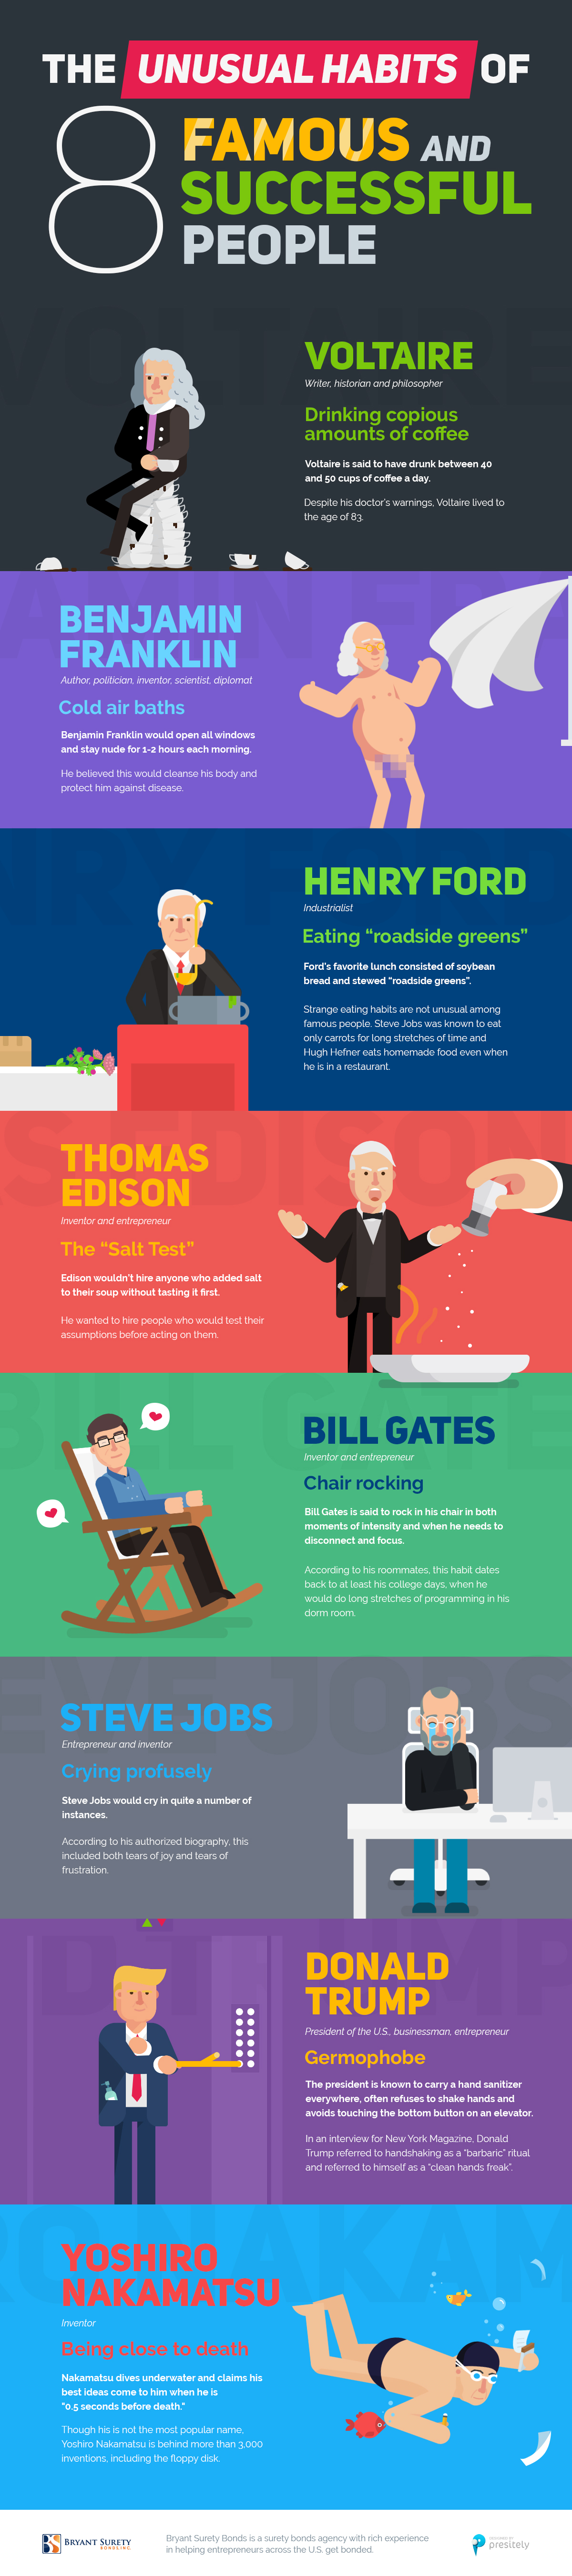 unusual habits of successful people infographic